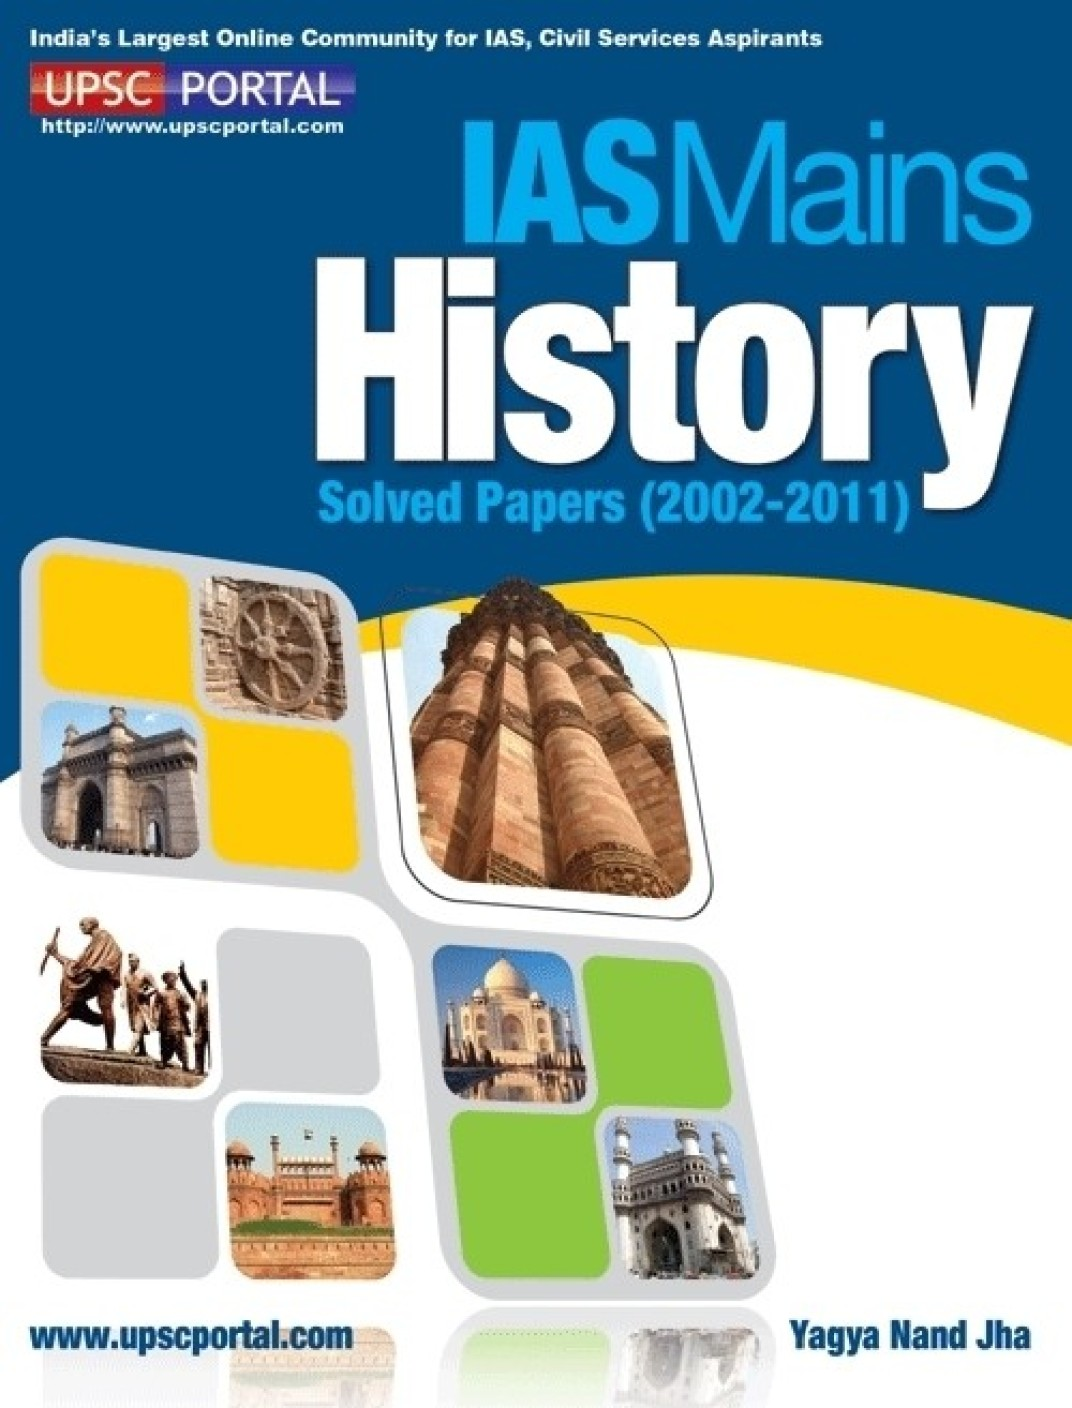 ias political science solved papers Upsc political science question papers below we have provided the exclusive downloads of upsc political science question papers these political science question papers have been compressed so that the download will be much faster and it will consume less internet data.